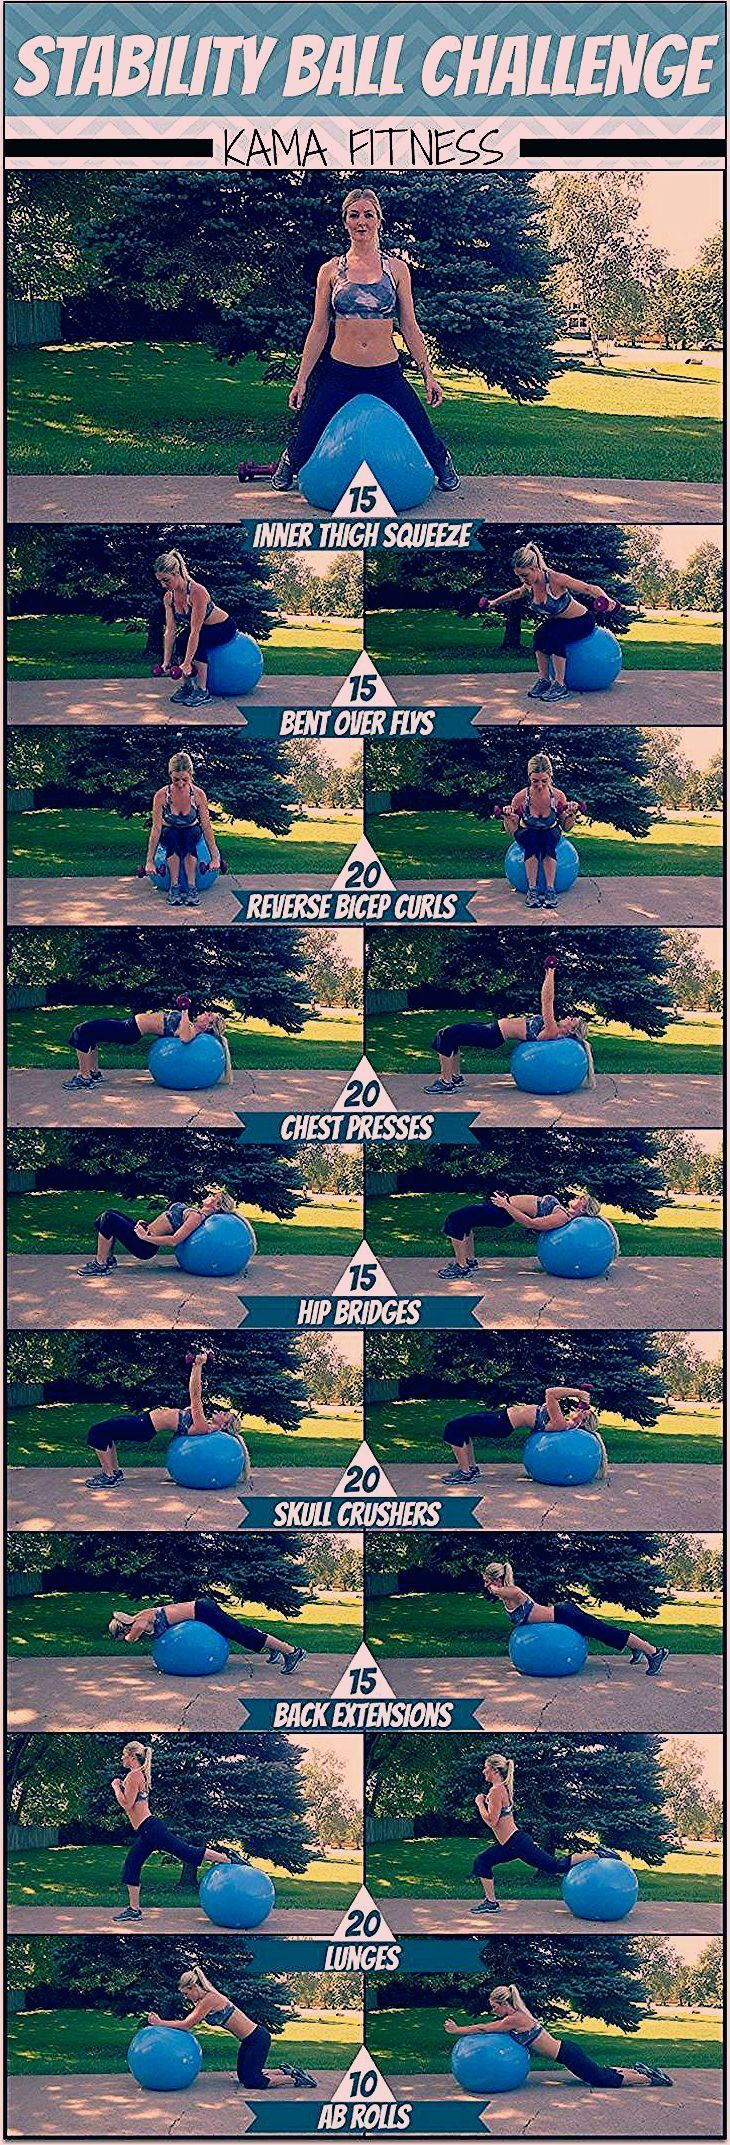 stability ball challenge, guaranteed to make you sweat. courageouspaths.com #fitness #exercise #stre...